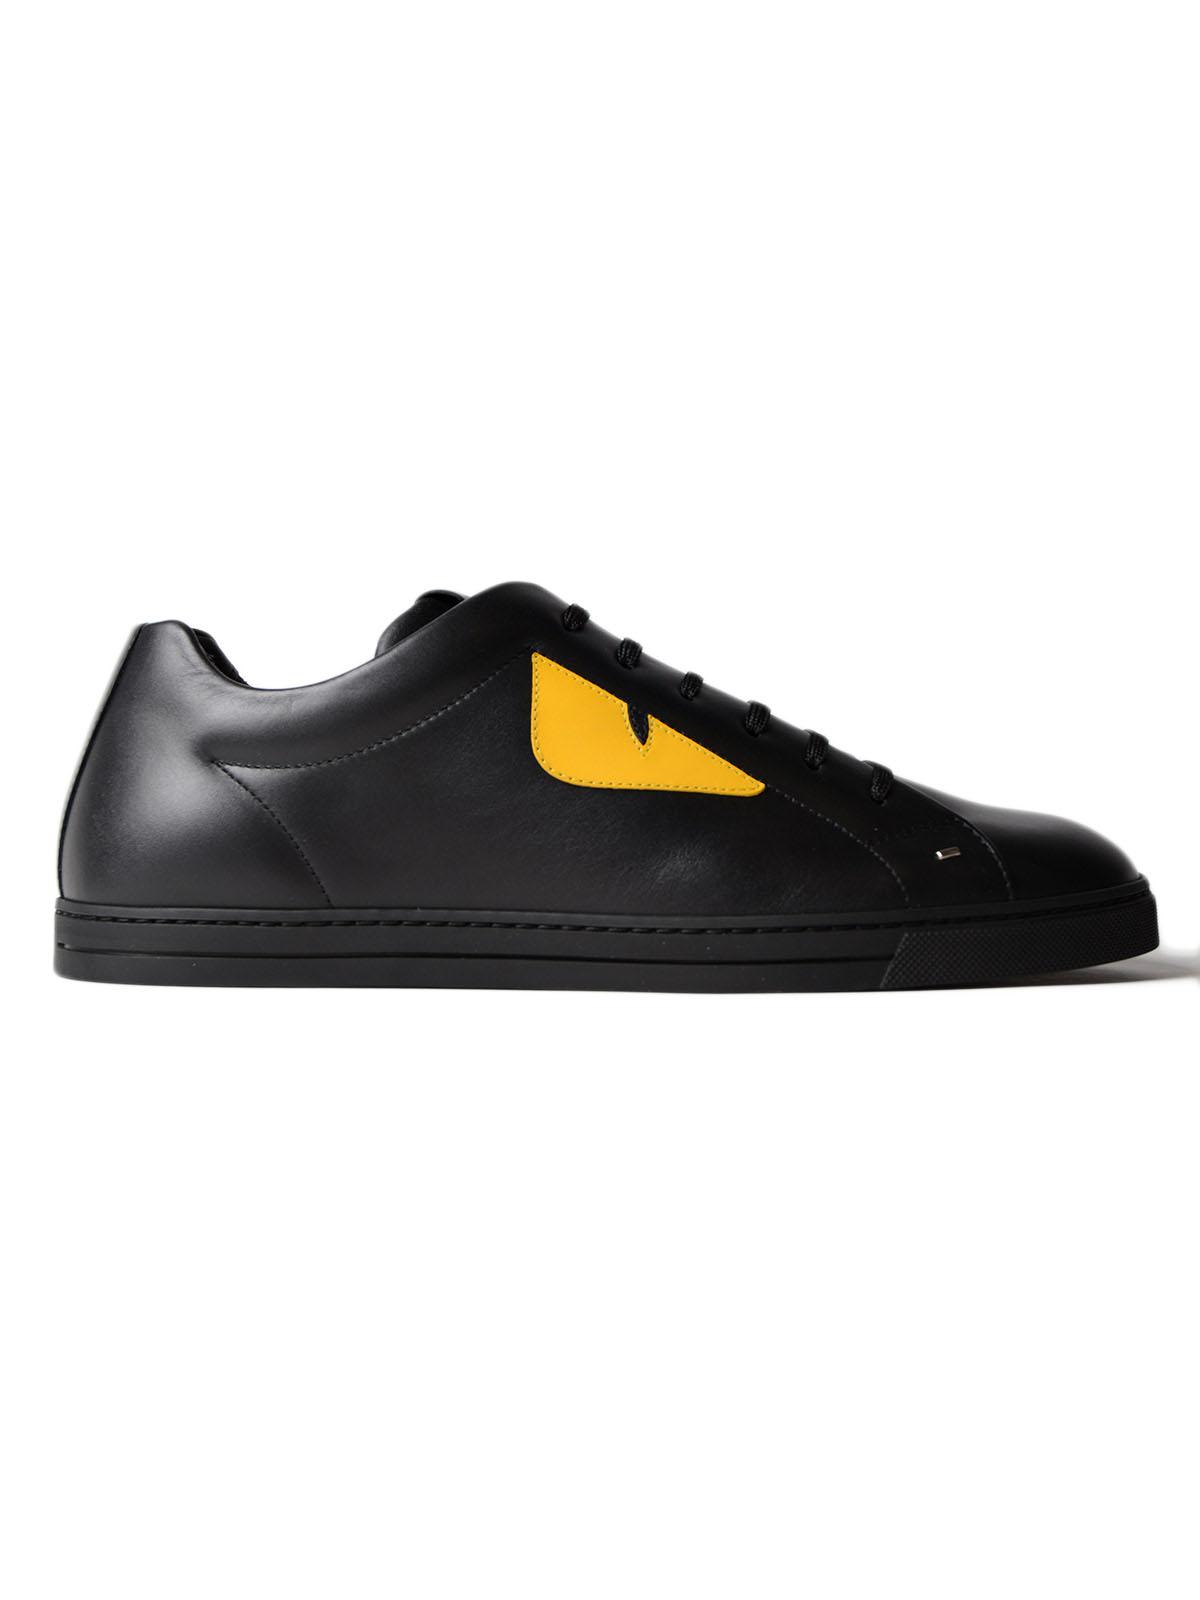 Fendi Black Embossed 'Forever Fendi' Sneakers tystKYVj